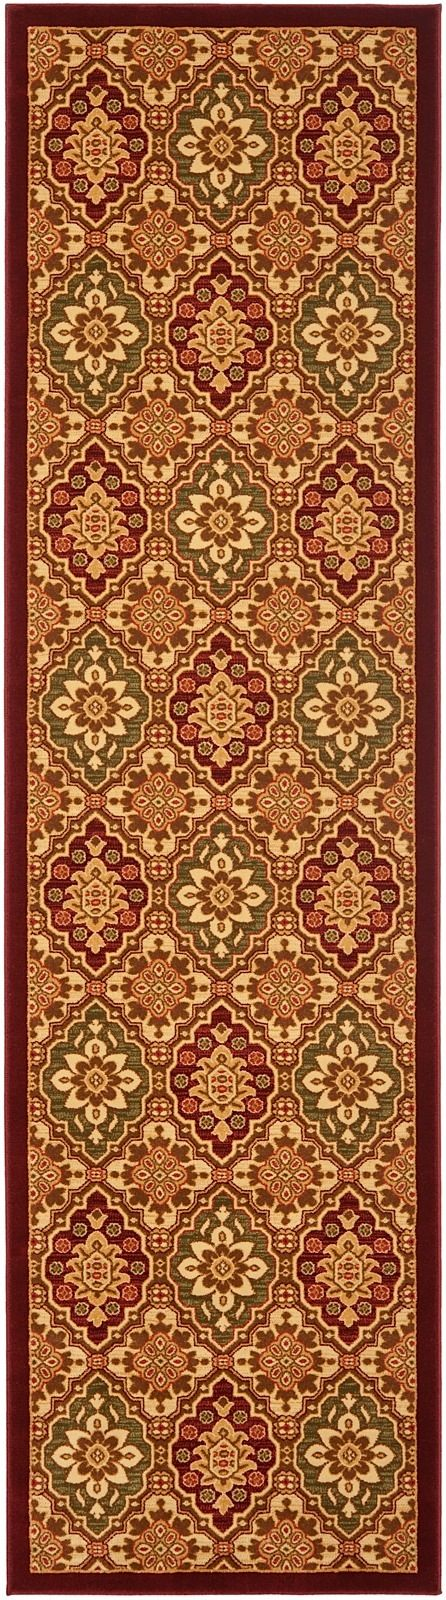 safavieh treasures traditional area rug collection